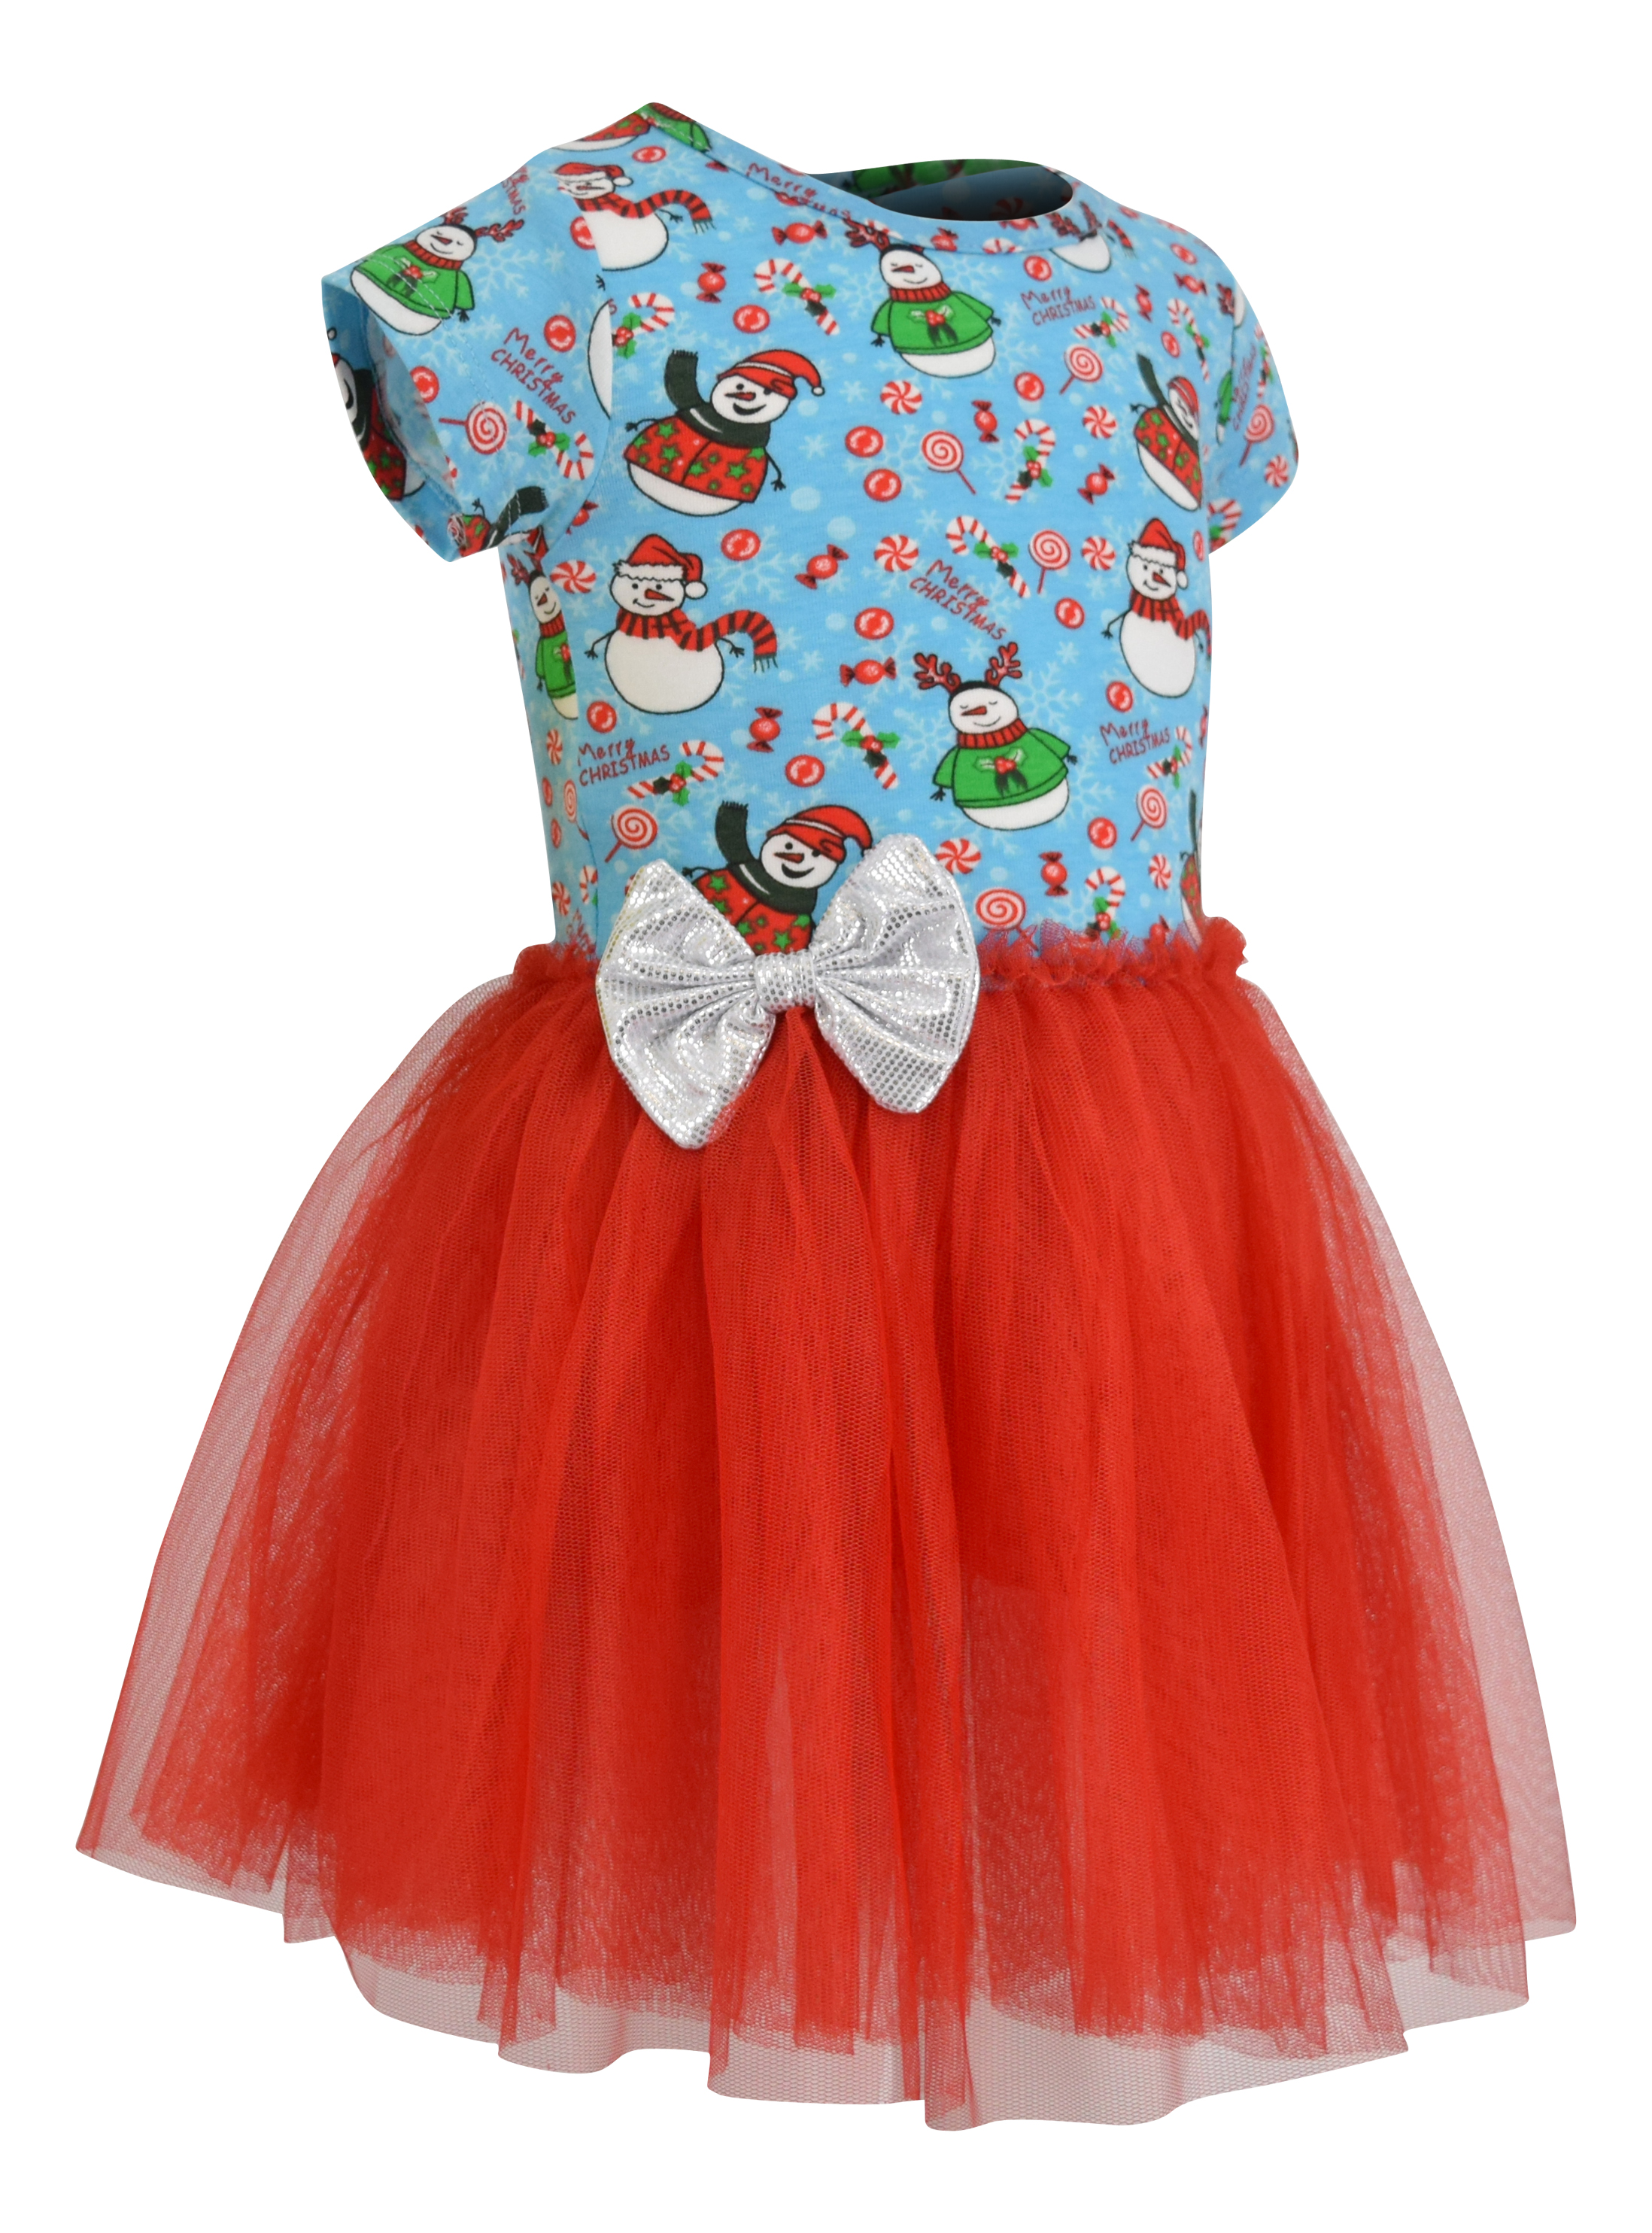 Girls Snowman Print Christmas Tutu Dress Boutique Toddler Kids